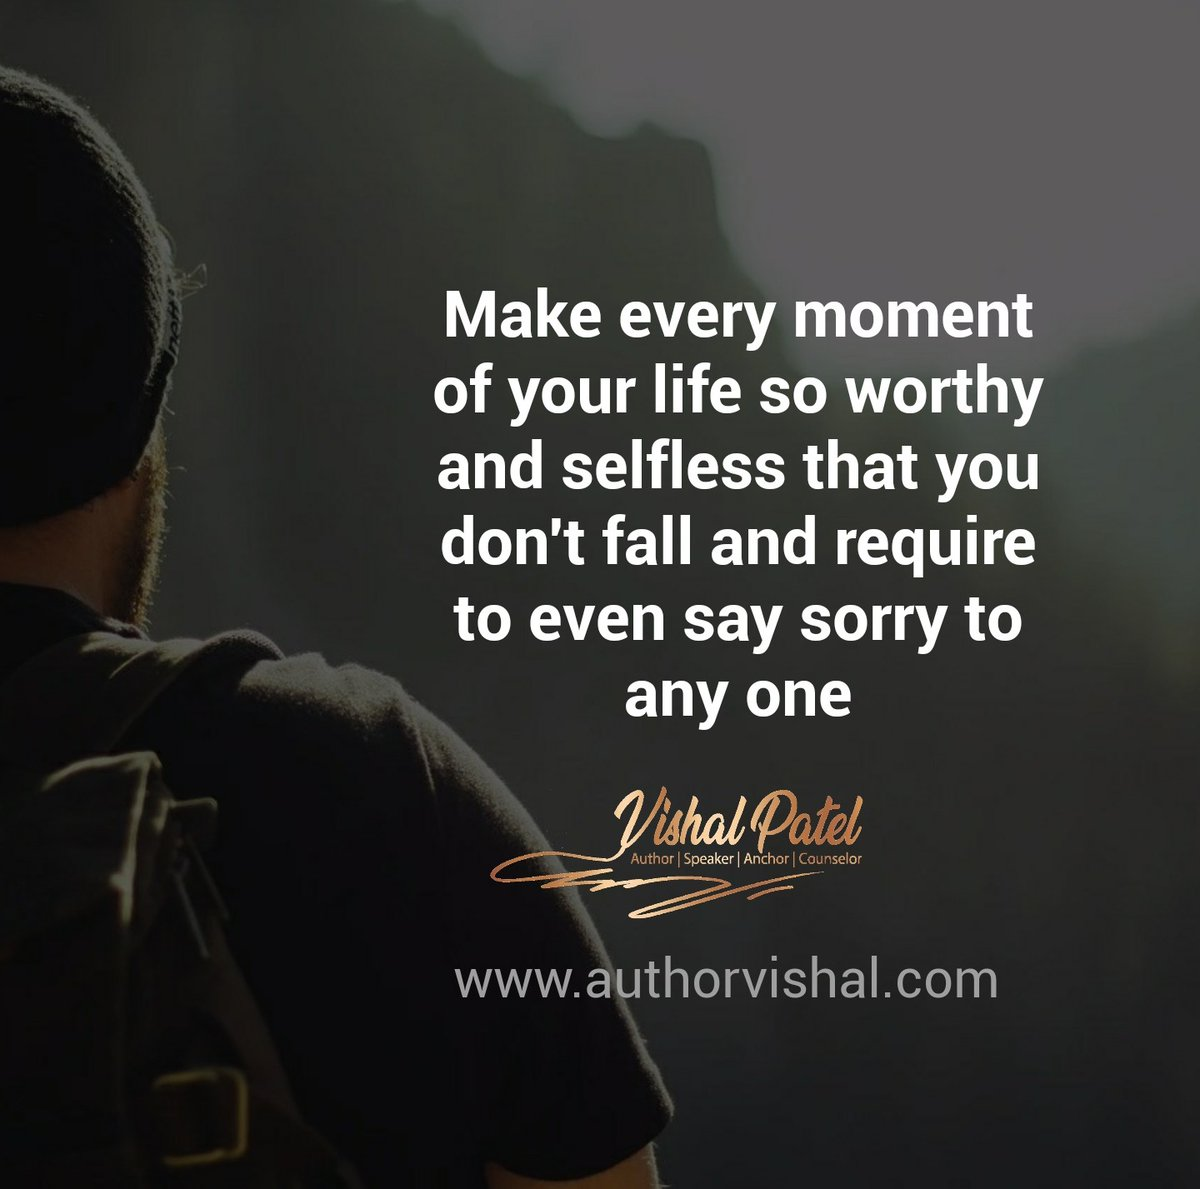 Make every #moment of your #life so #worthy and #selfless that you don't #fall and #require to even say #sorry to any one. . . . PC: Free-Photos  #authorvishalpatel #quotes #motivational #inspirational